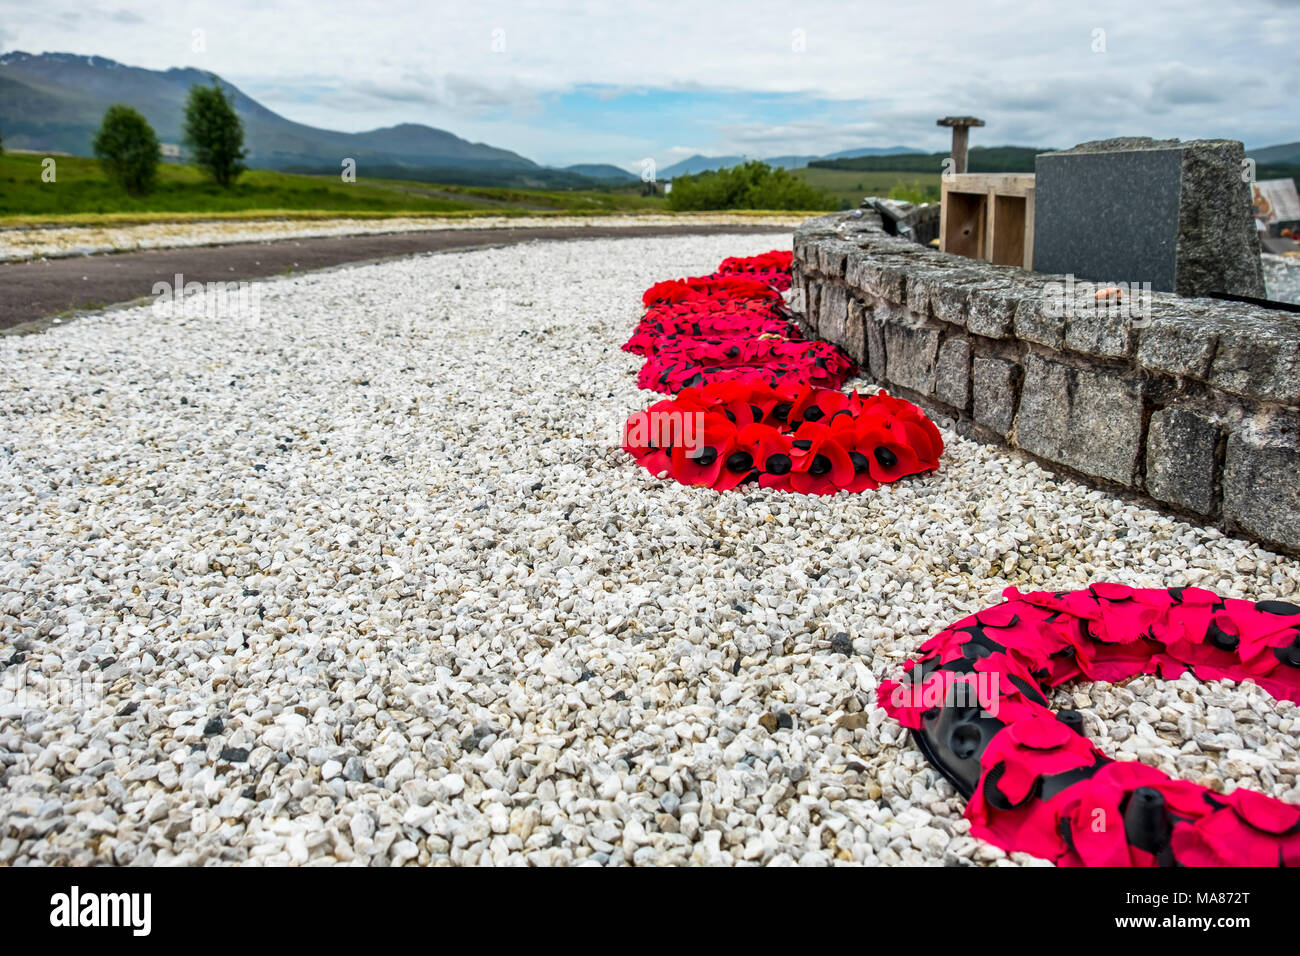 Remembrance day poppies laying close to the commando memorial in Spean bridge, Scotland - United Kingdom. Stock Photo